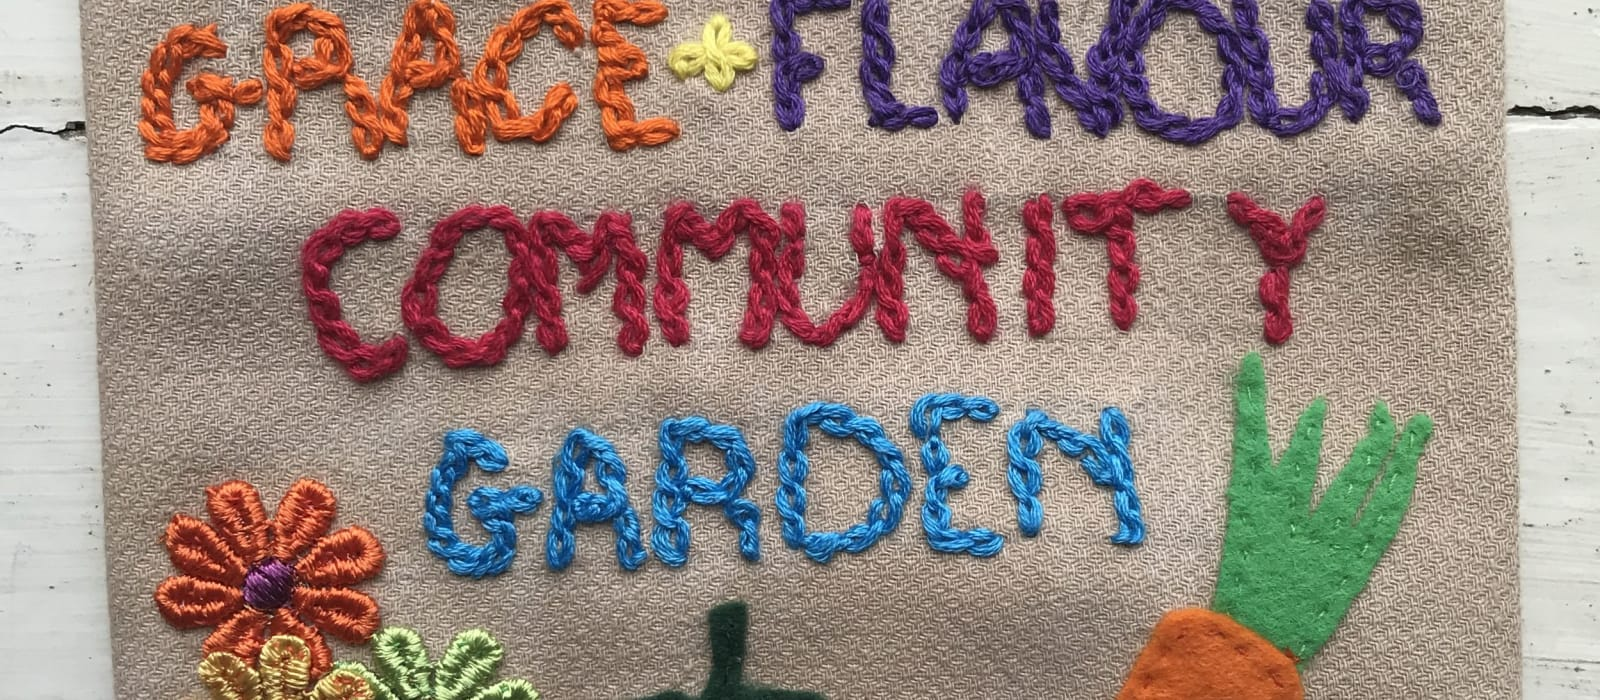 Slashed Fabrics and Community Gardens